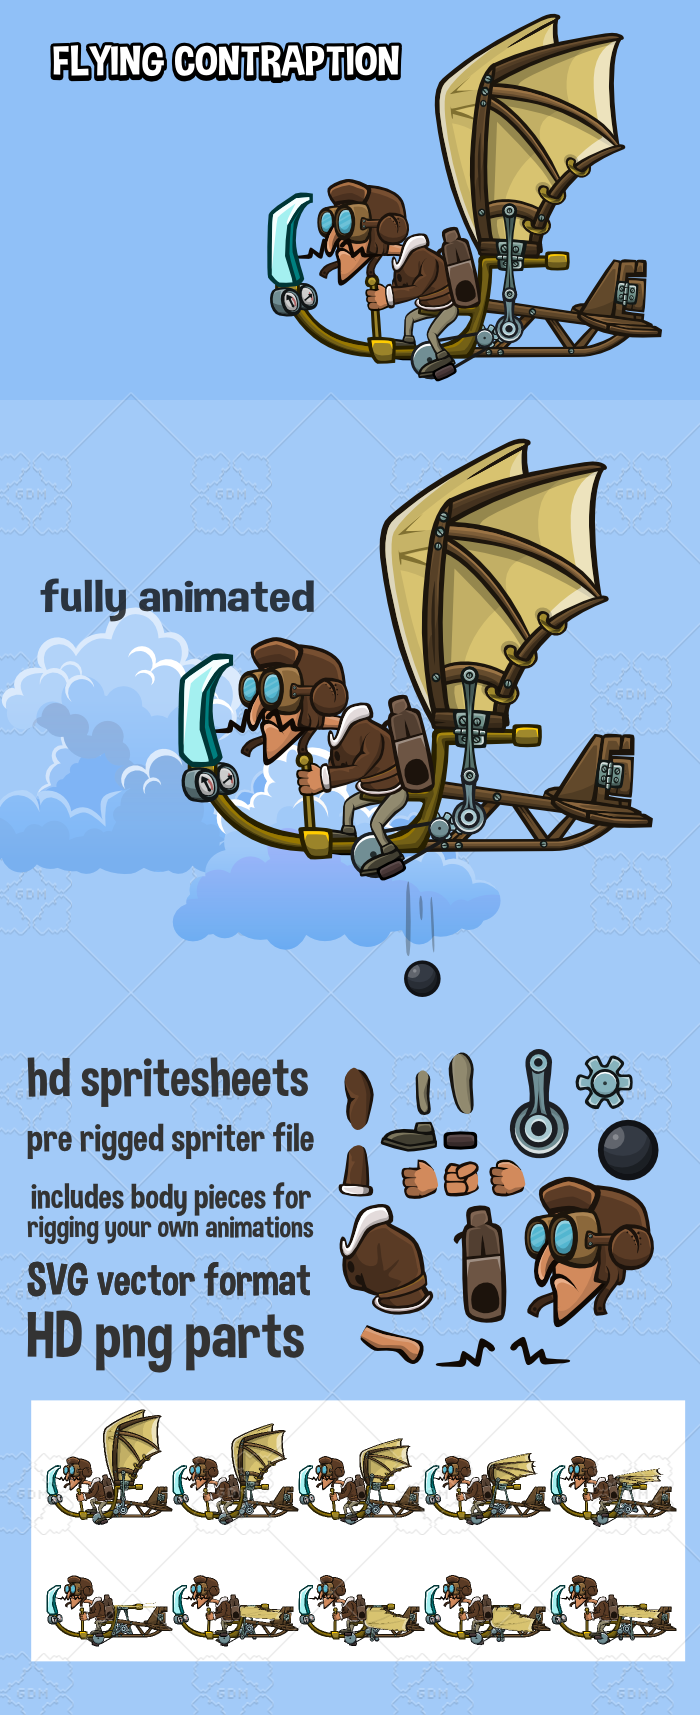 Animated flying contraption 2